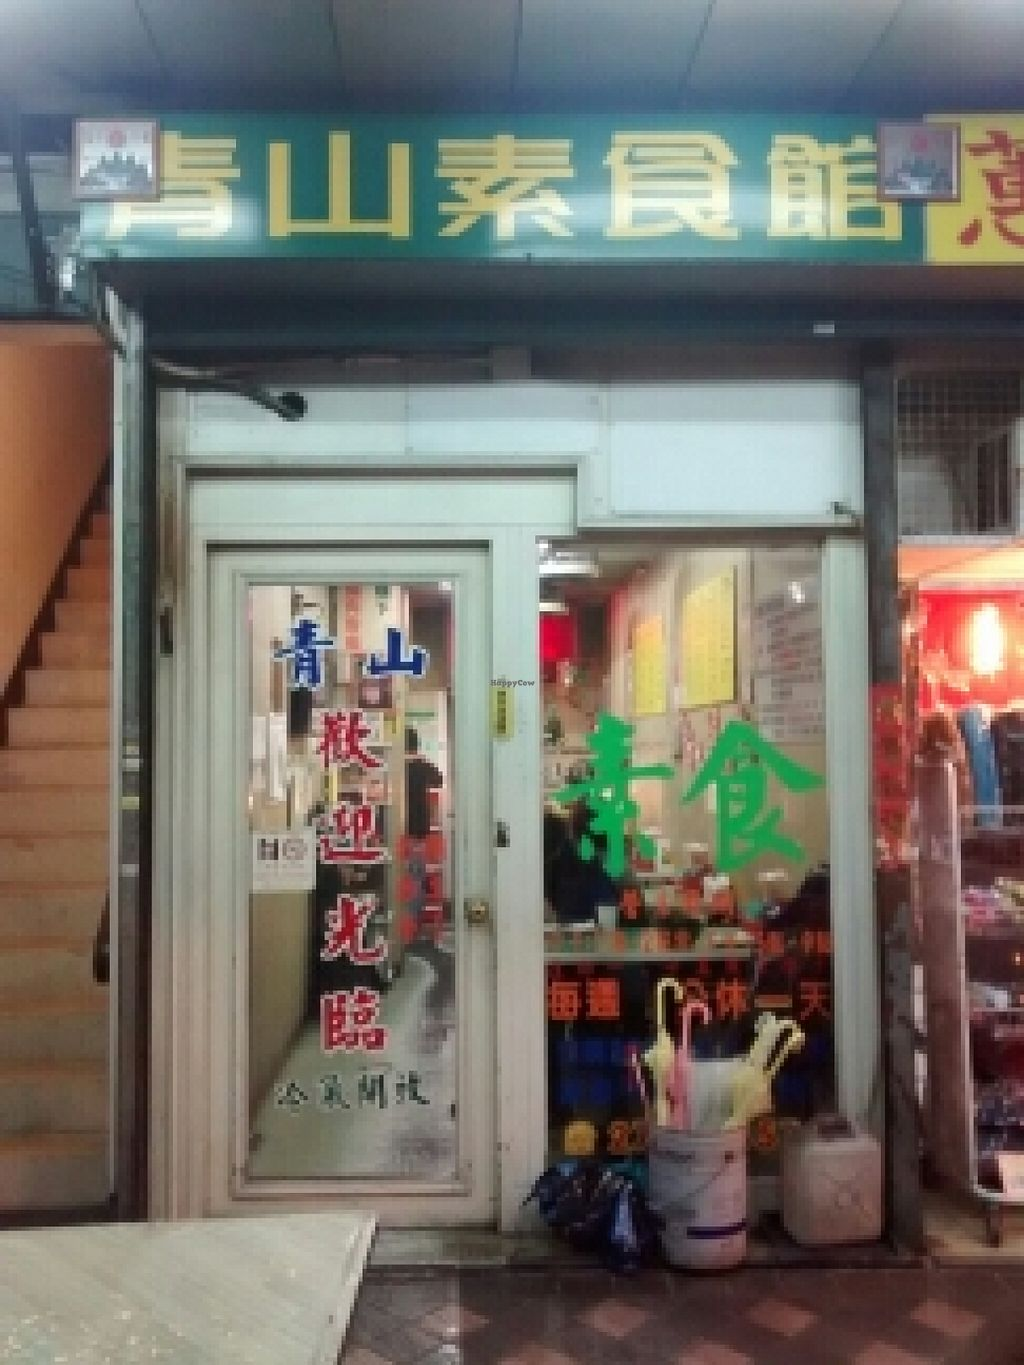 """Photo of Qing Shan  by <a href=""""/members/profile/Citizen%20Wren"""">Citizen Wren</a> <br/>exterior <br/> February 26, 2016  - <a href='/contact/abuse/image/47194/137834'>Report</a>"""